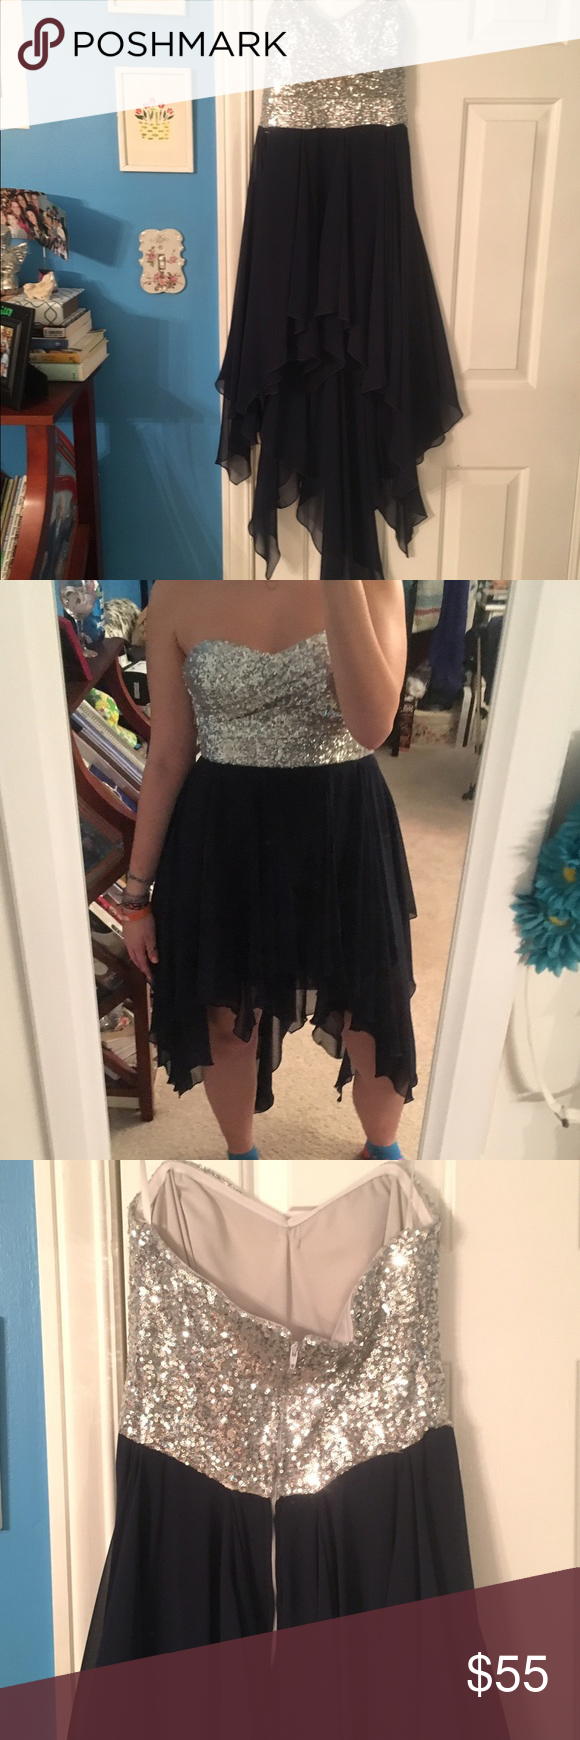 Highlow prom dress nwot high low prom or special event dress